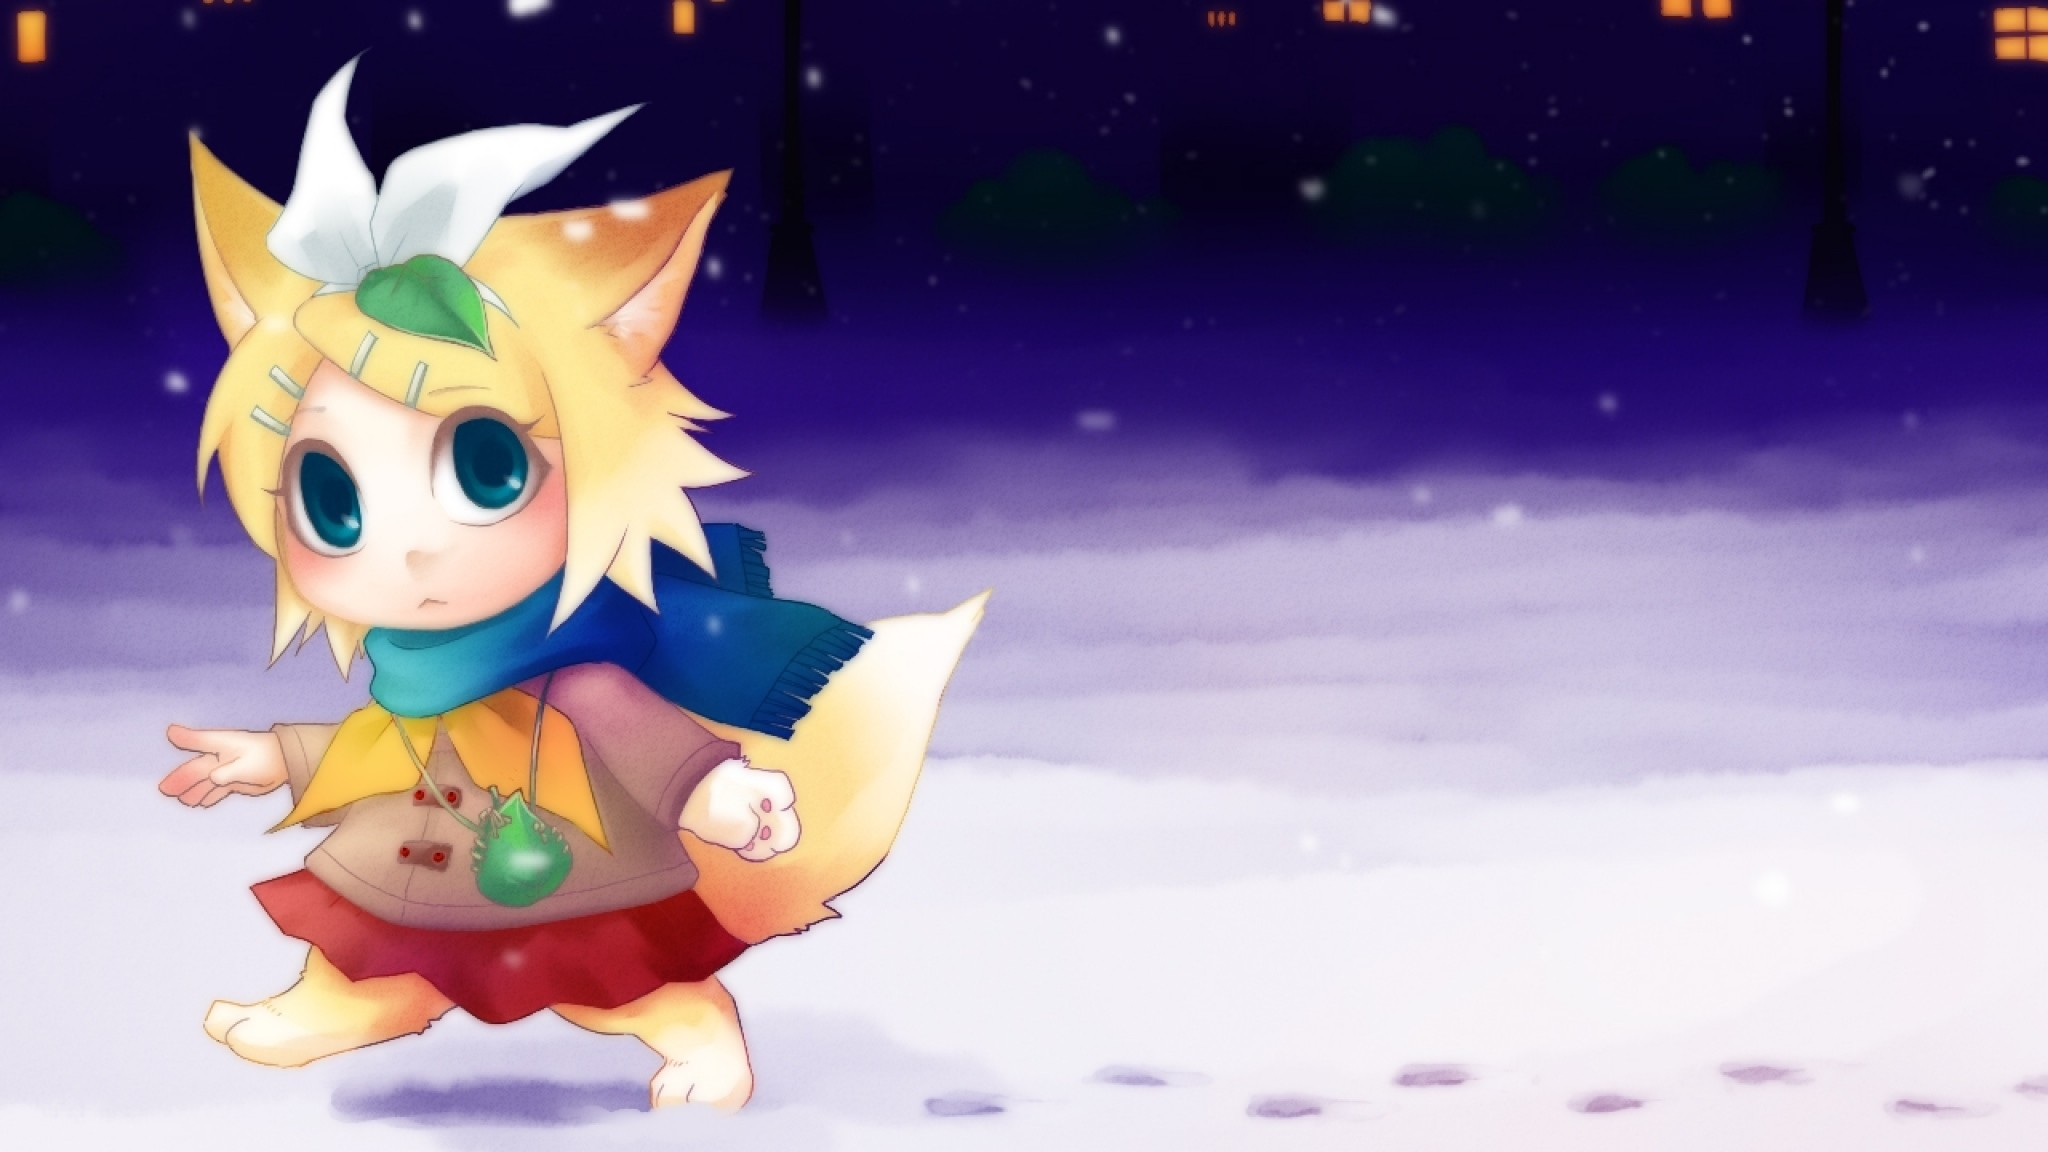 Preview wallpaper vocaloid, kagamine rin, chibi, anime, christmas, winter  2048×1152